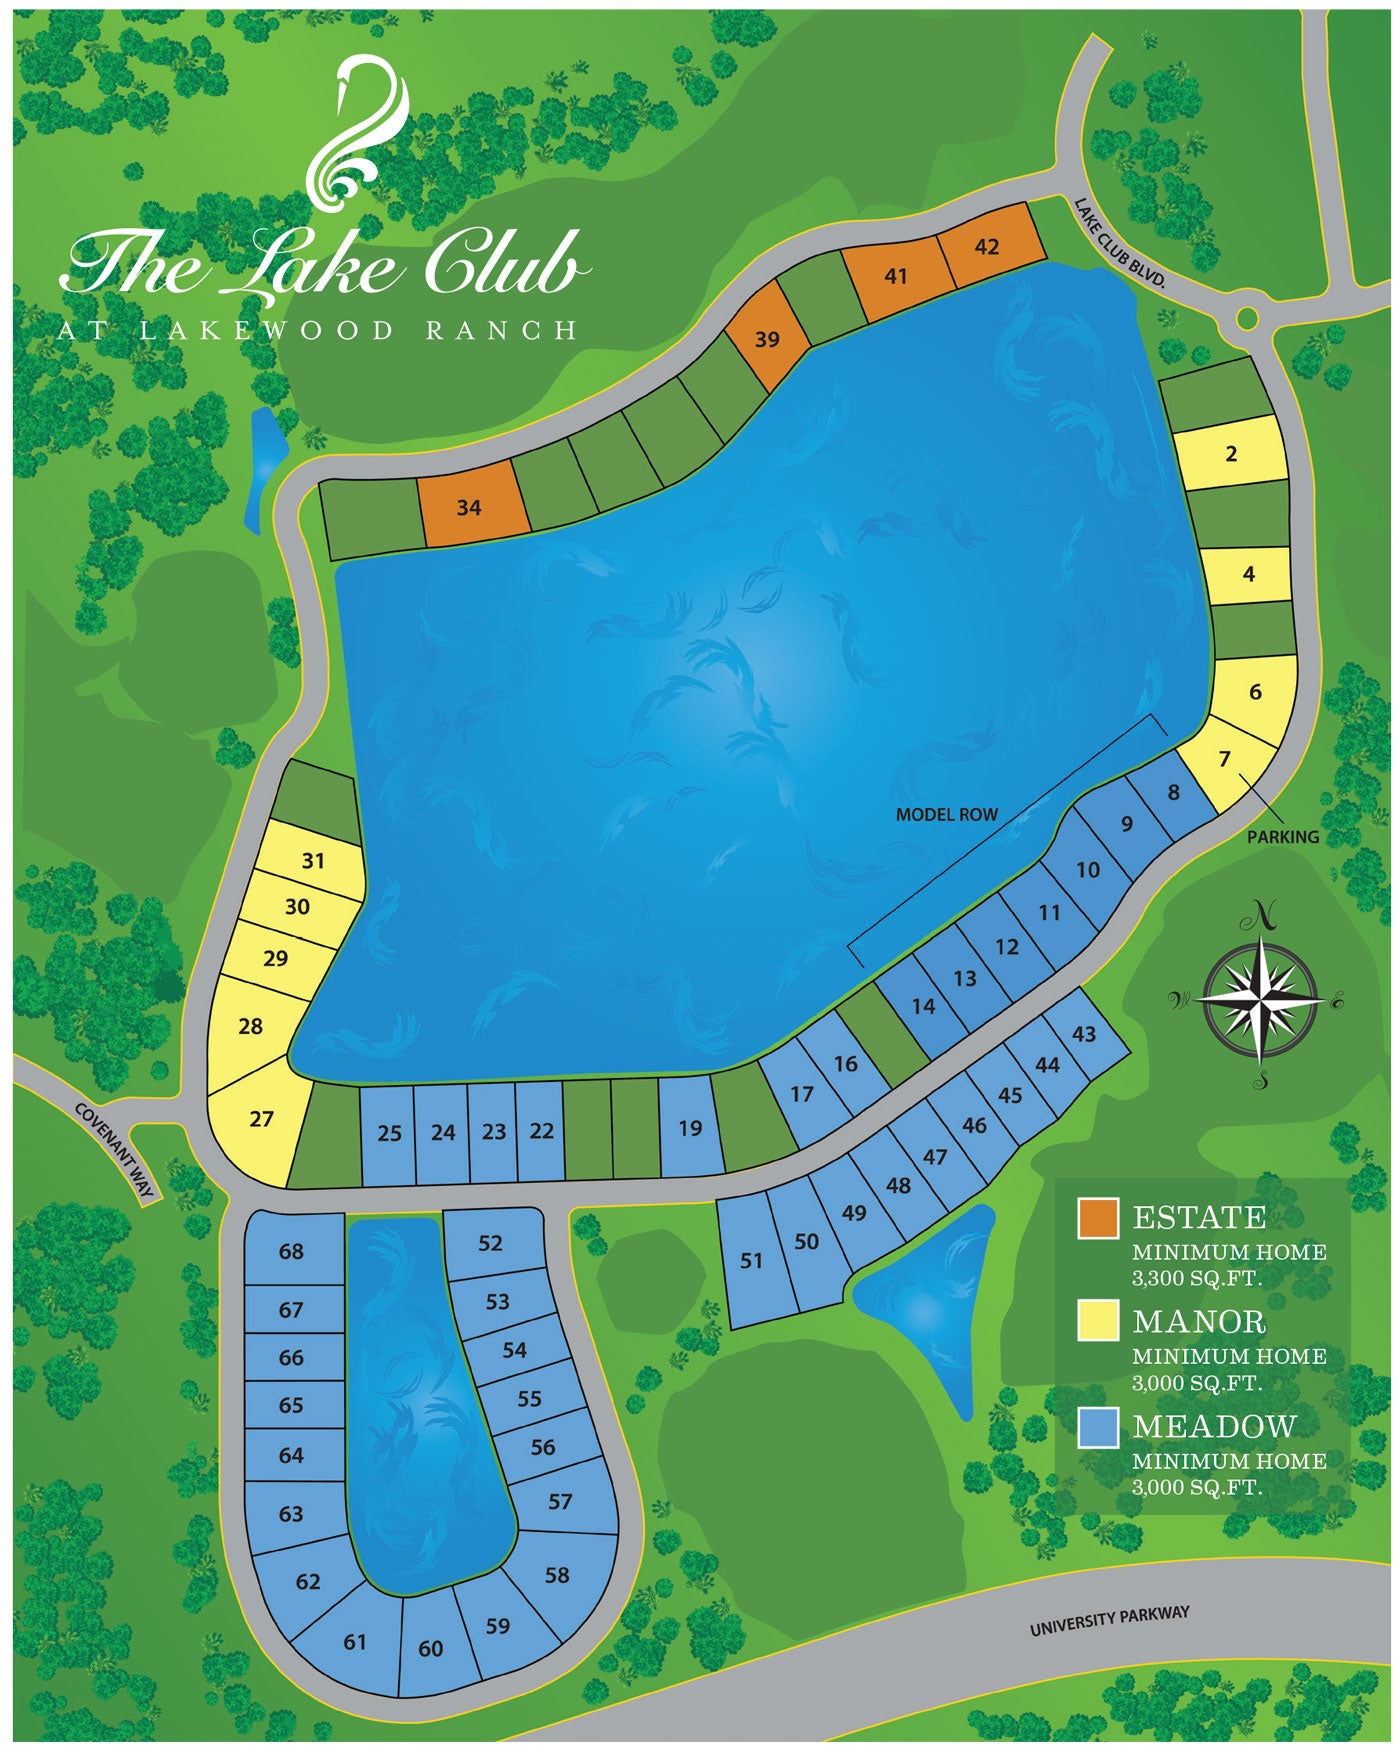 Lake View Estates at The Lake Club